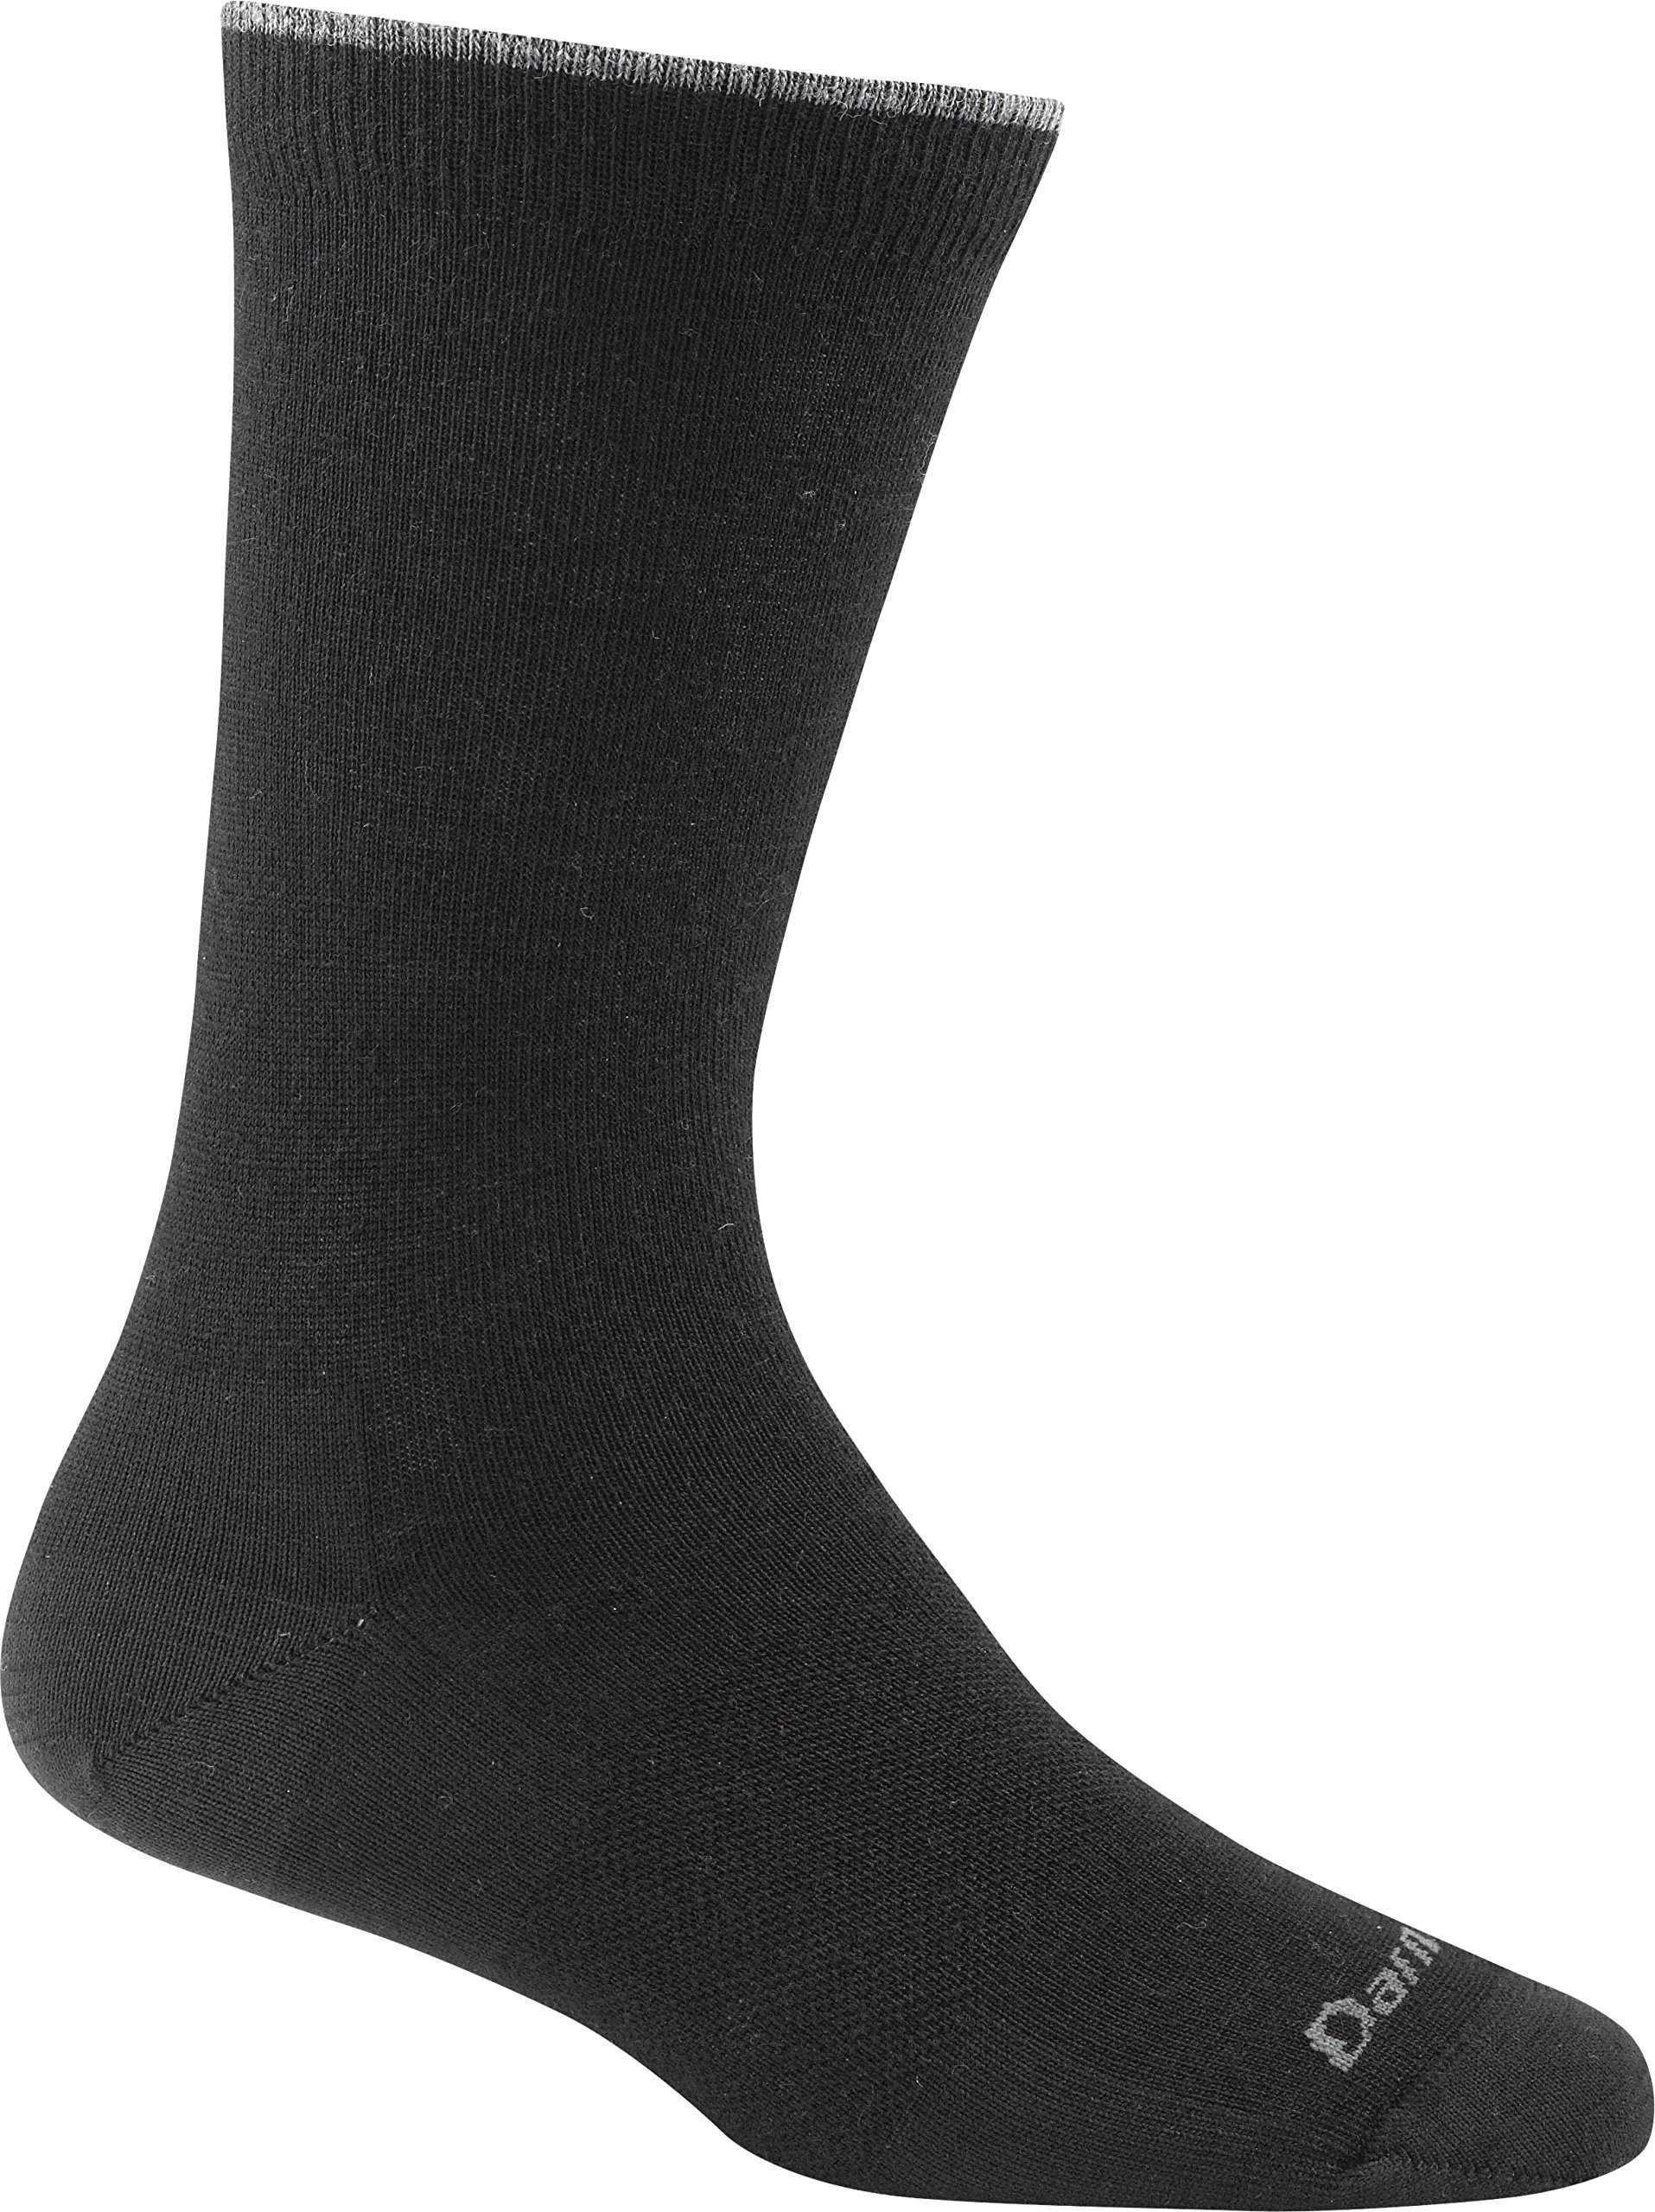 Darn Tough Women's Merino Wool Solid Basic Crew Light Socks, Black, Large - 6 Pack Special Offer by Darn Tough